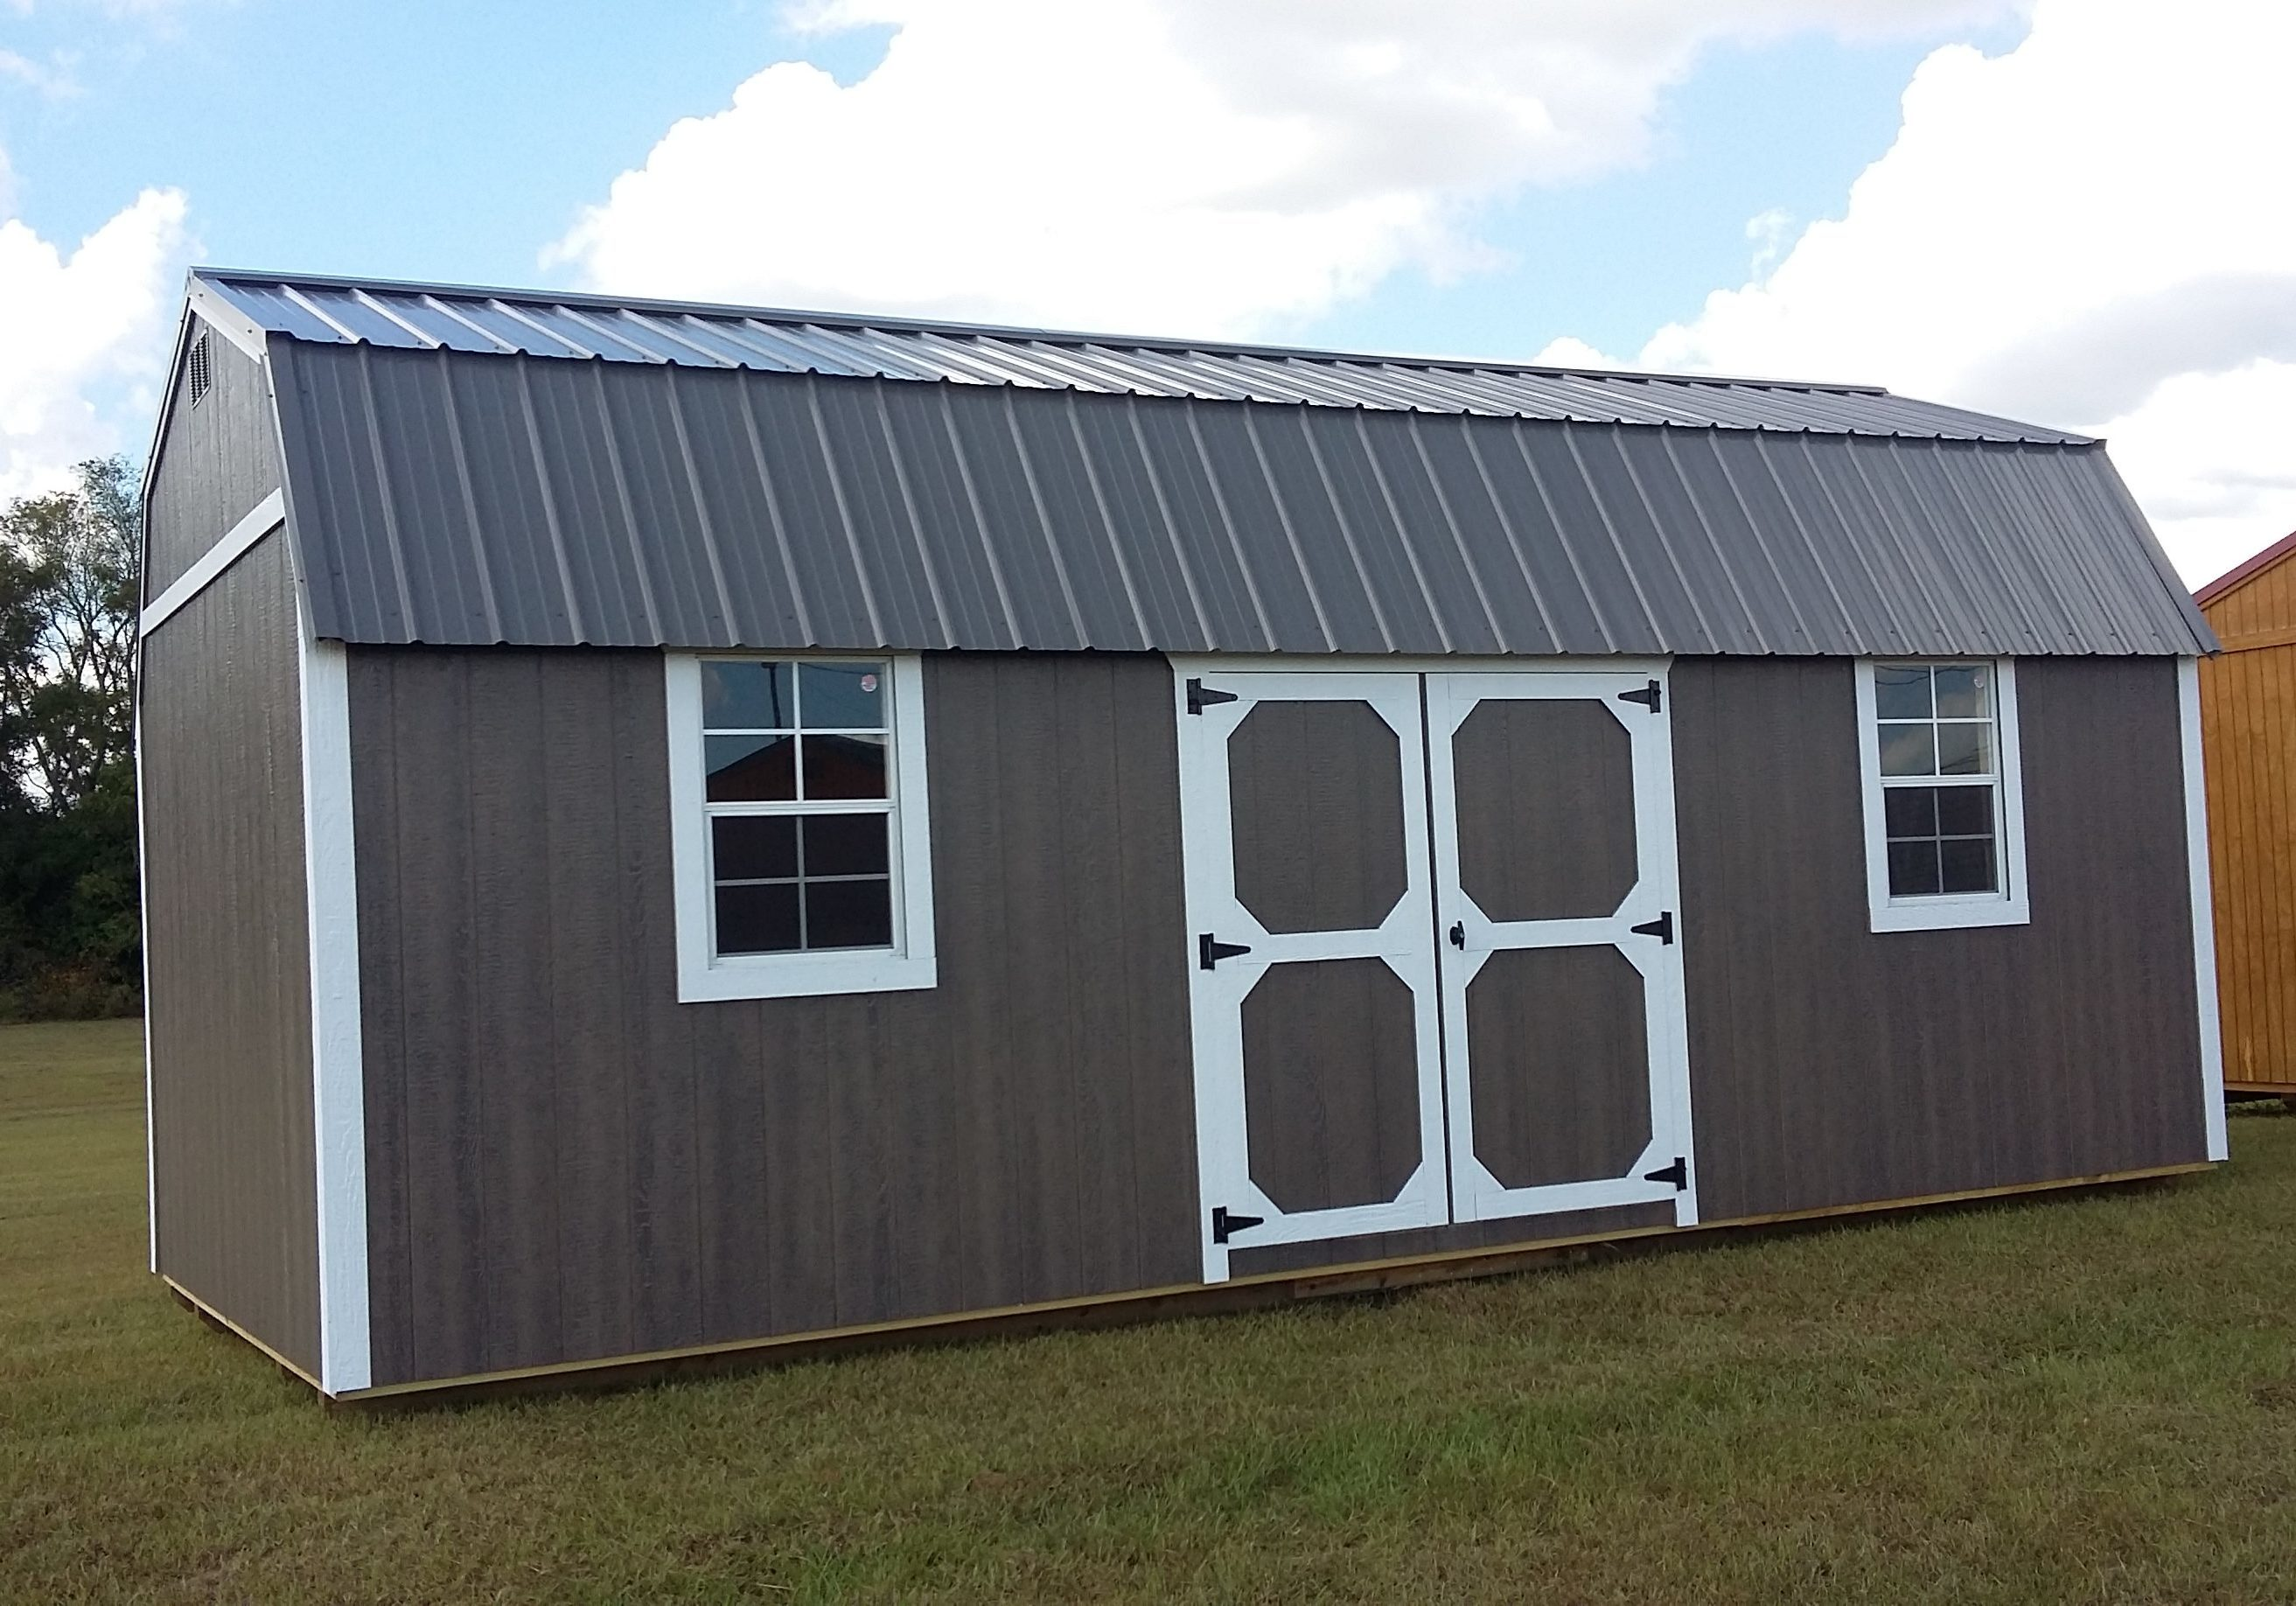 12' x 24' Side Lofted Barn with LP SmartSide